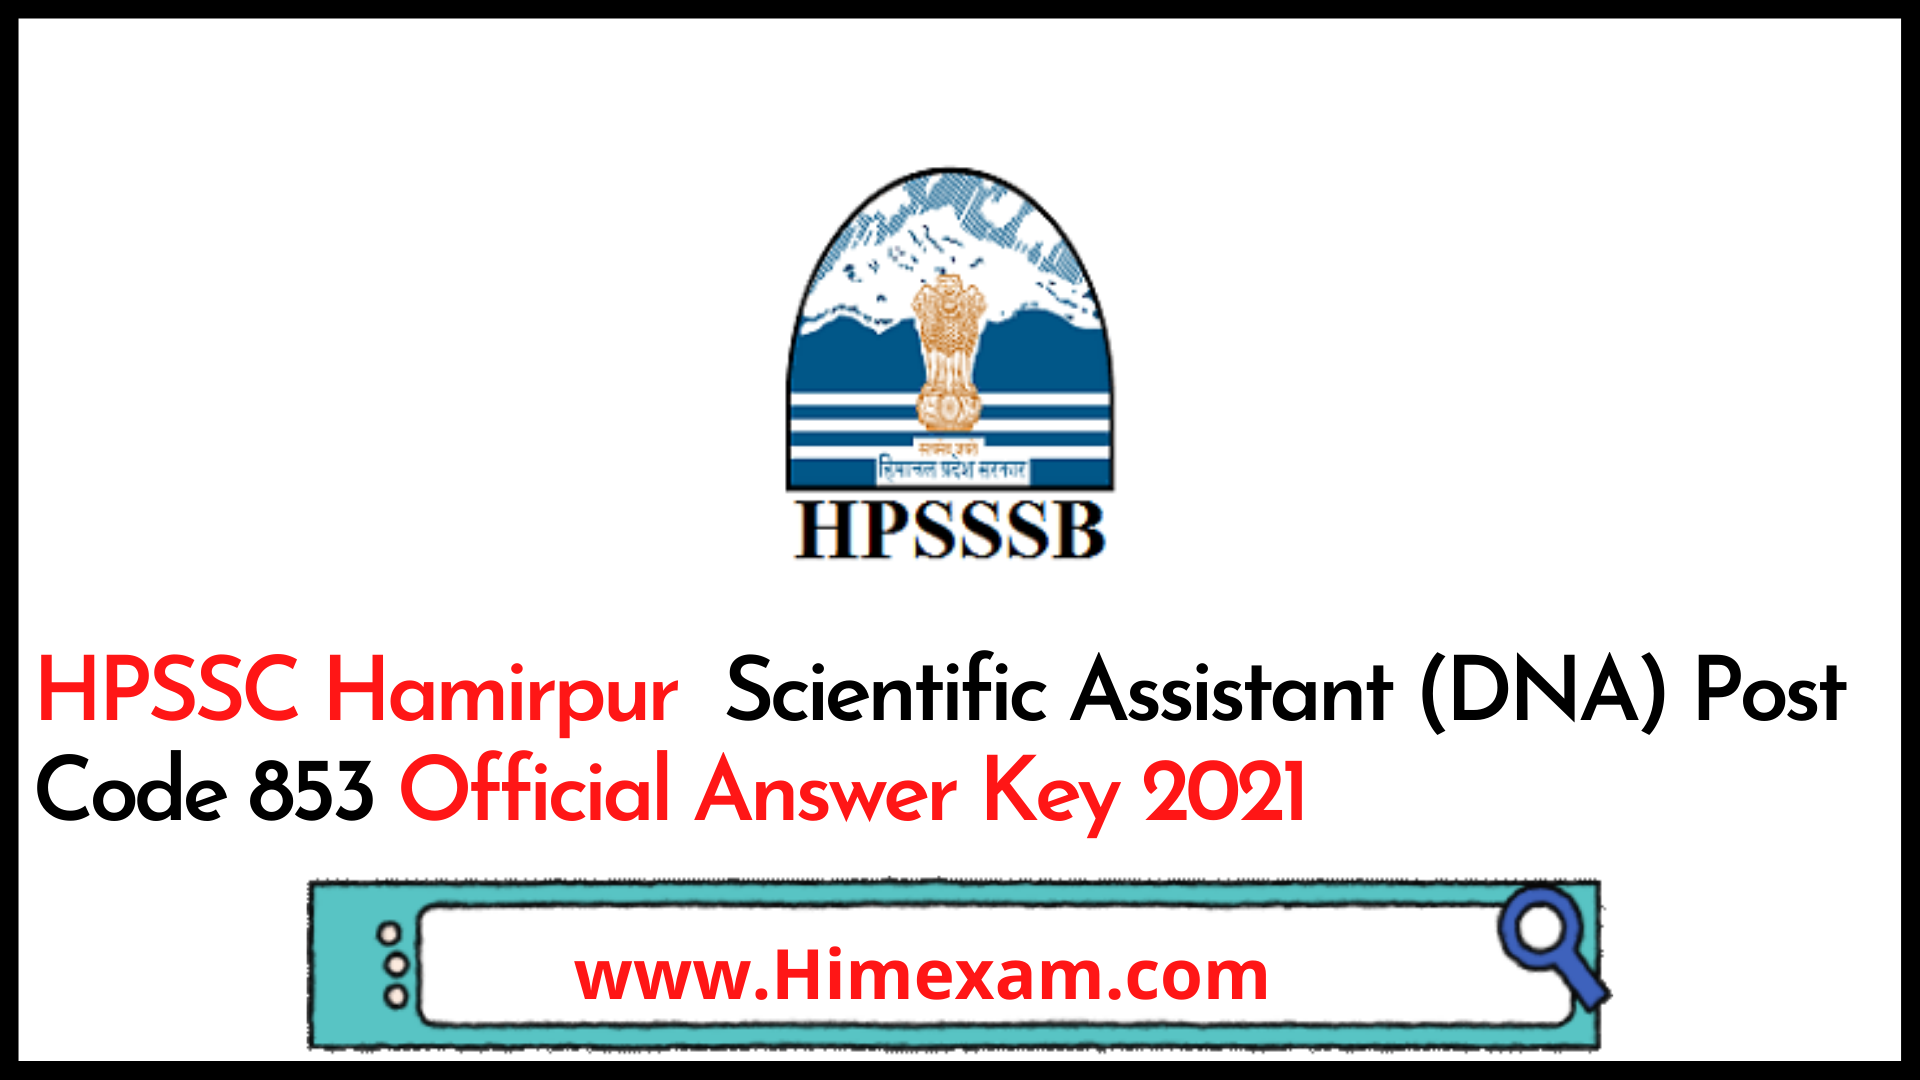 HPSSC Hamirpur  Scientific Assistant (DNA) Post Code 853 Official Answer Key 2021